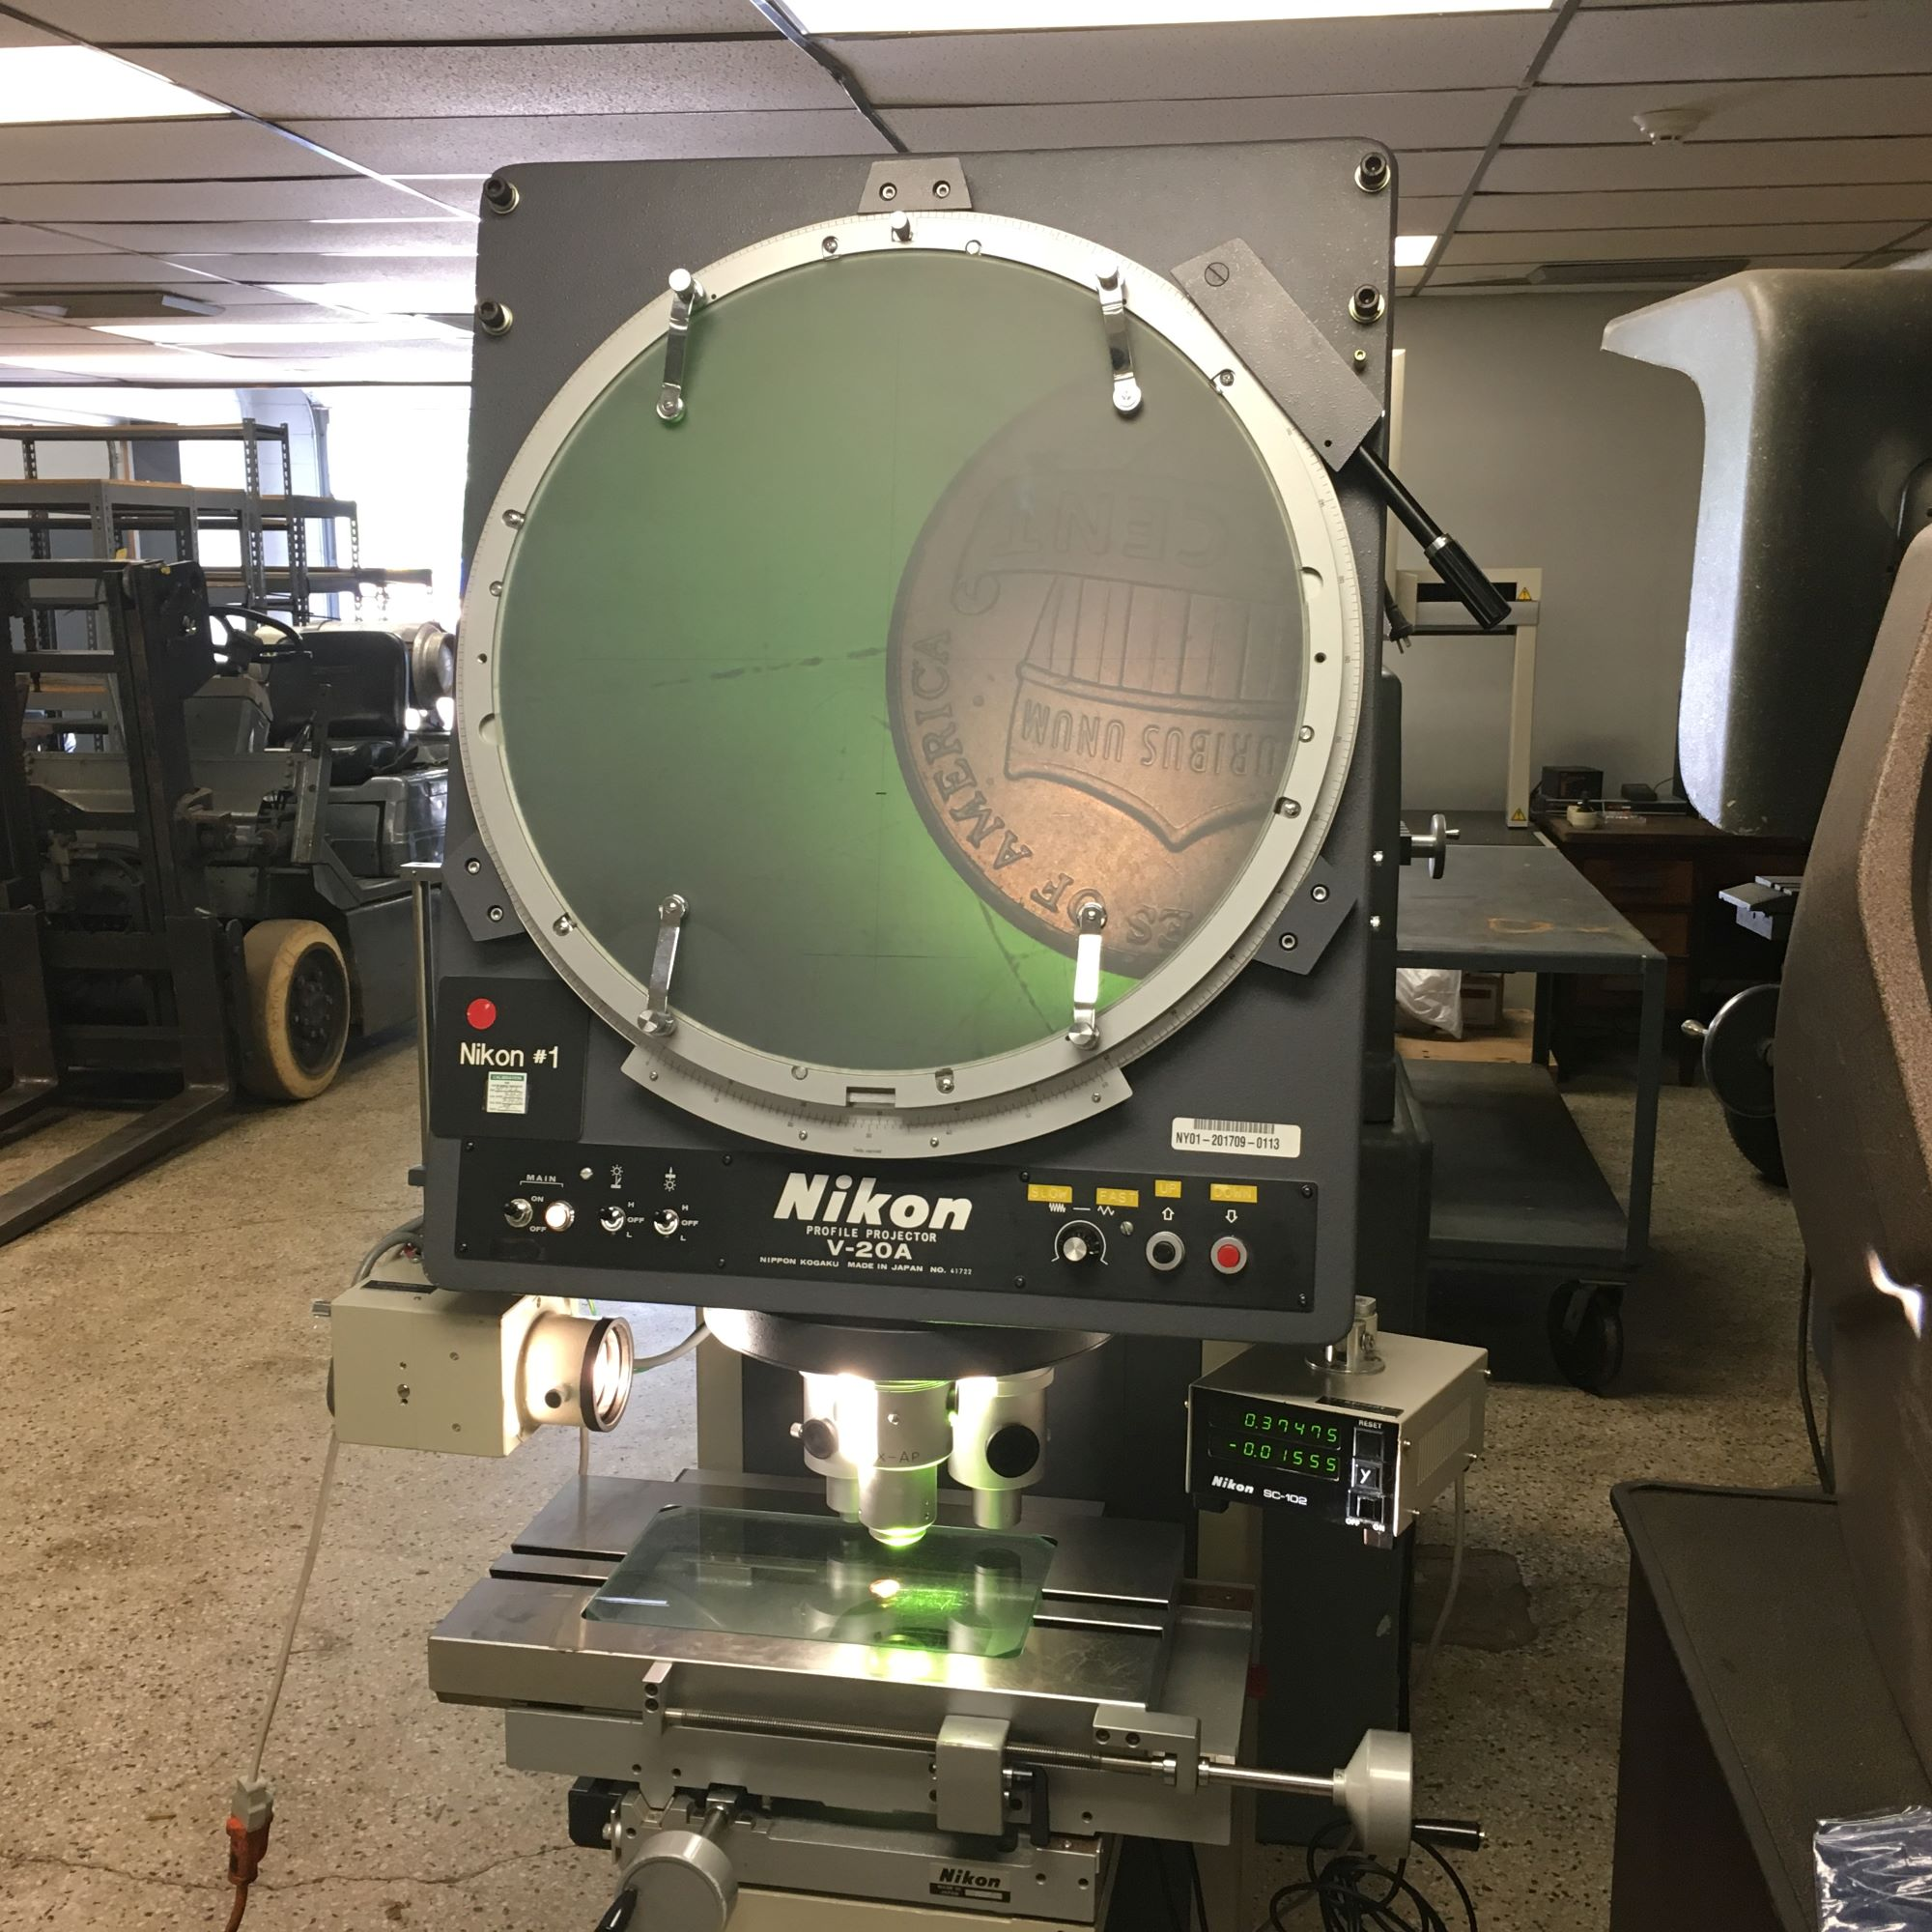 "20"" NIKON Model V-20A Vertical Beam Floor Model Optical Comparator / Profile Projector, S/N 41722."